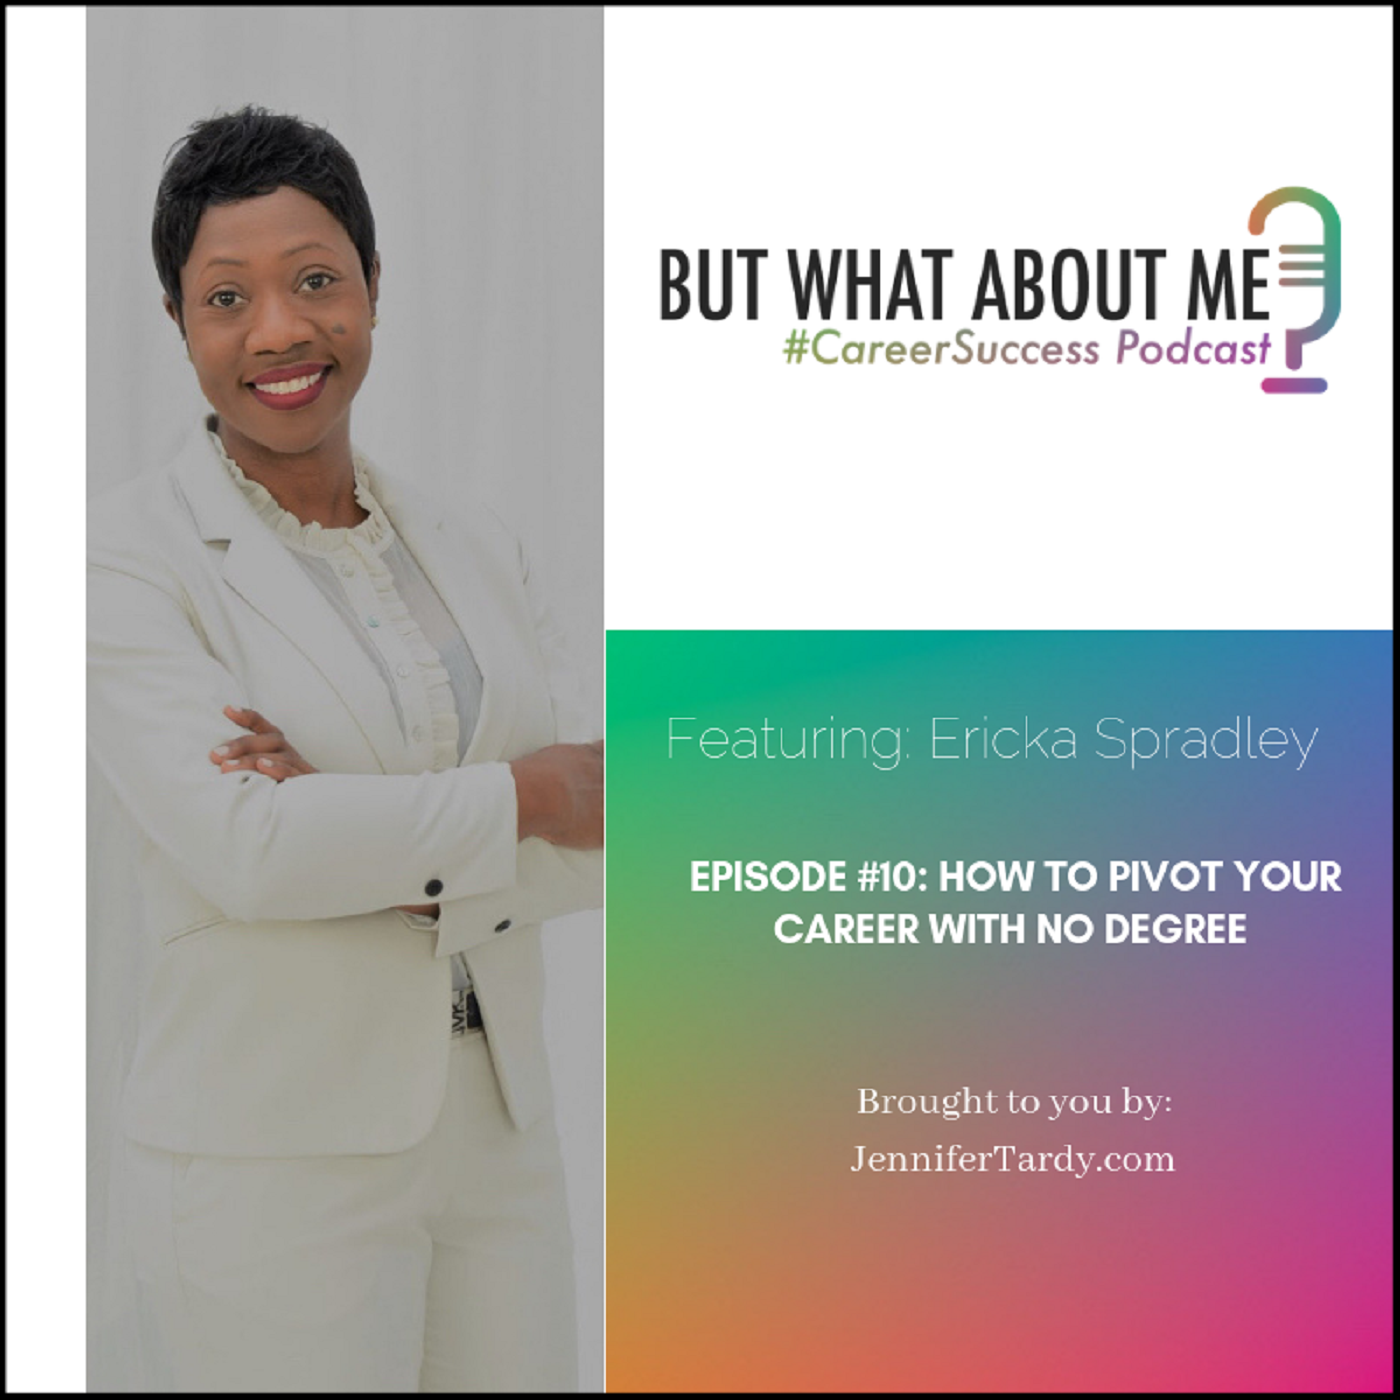 Episode 10: How To Pivot Your Career With No Degree